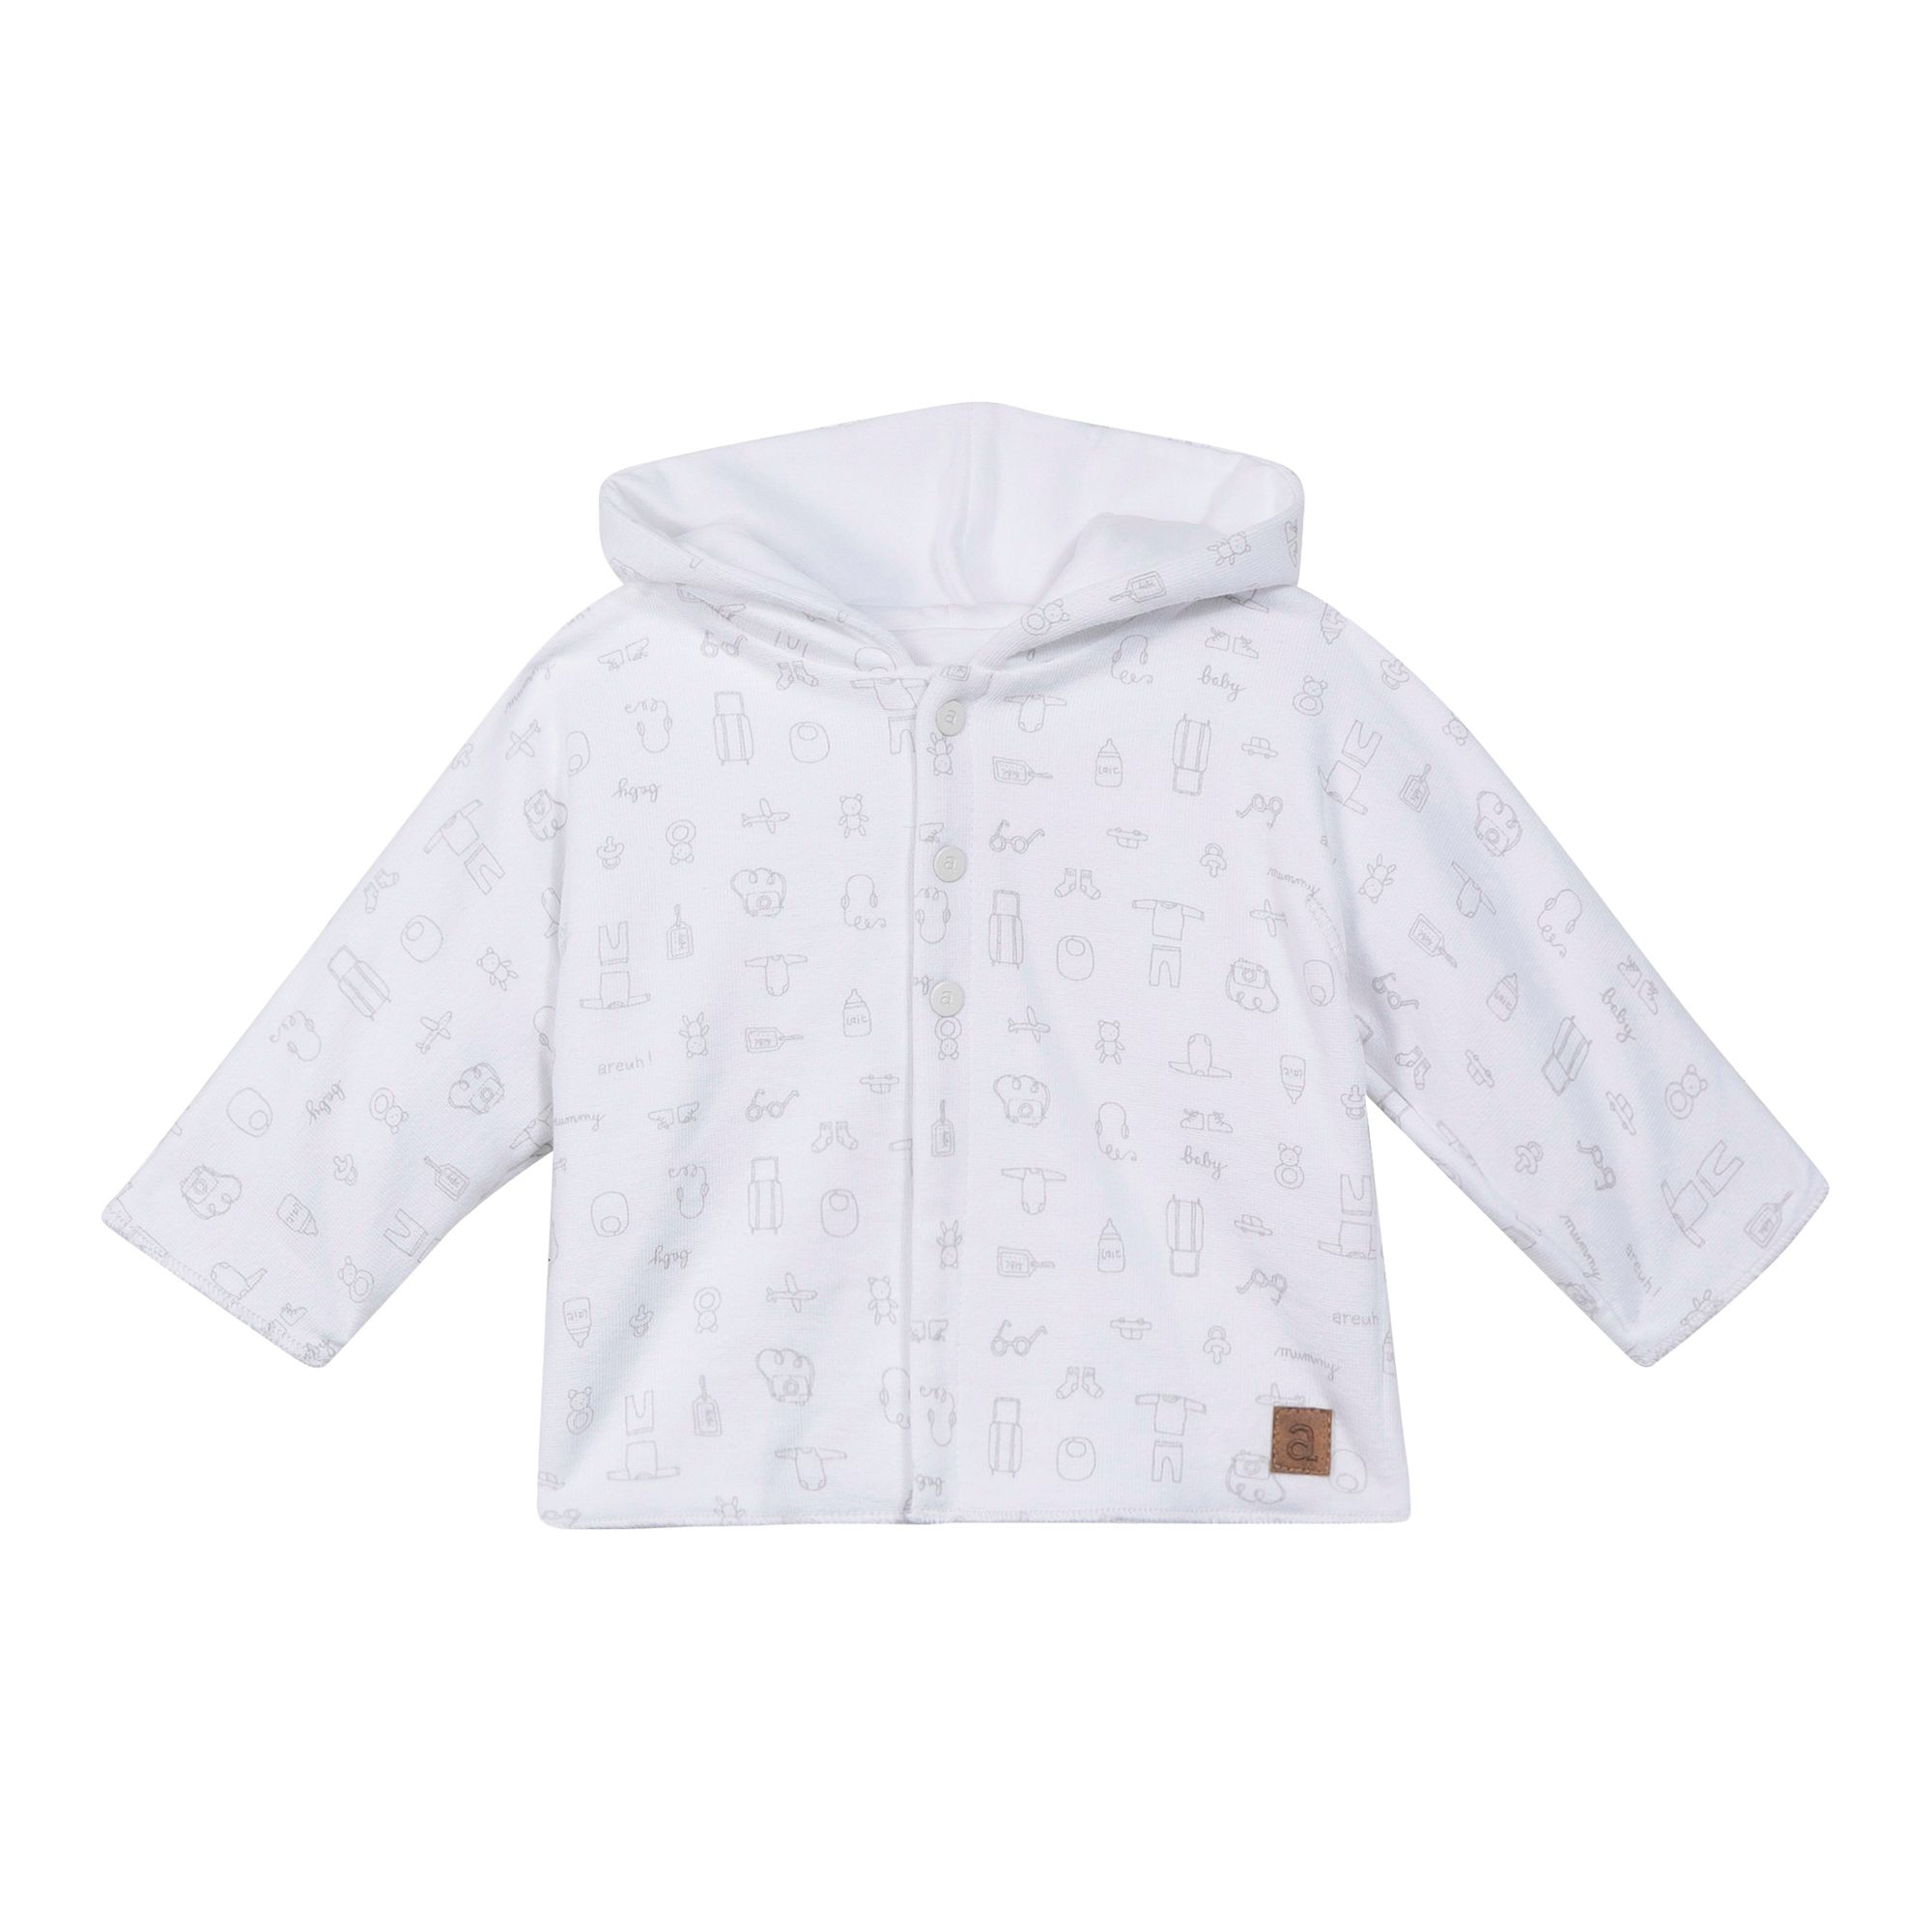 Absorba Absorba Baby Natural Cotton Coat, White